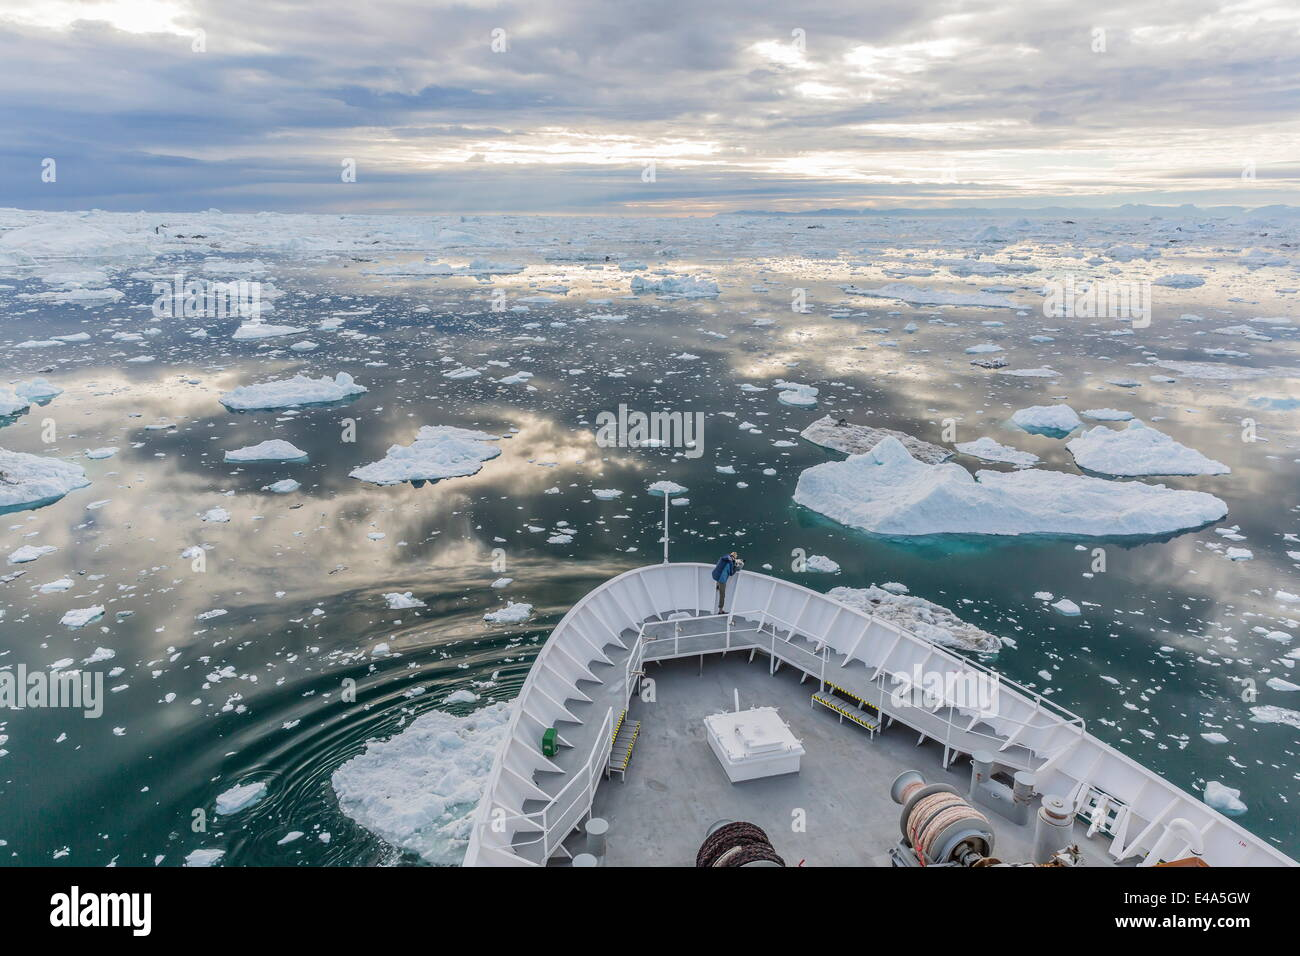 Expeditions ship amongst huge icebergs, Ilulissat, Greenland, Polar Regions - Stock Image